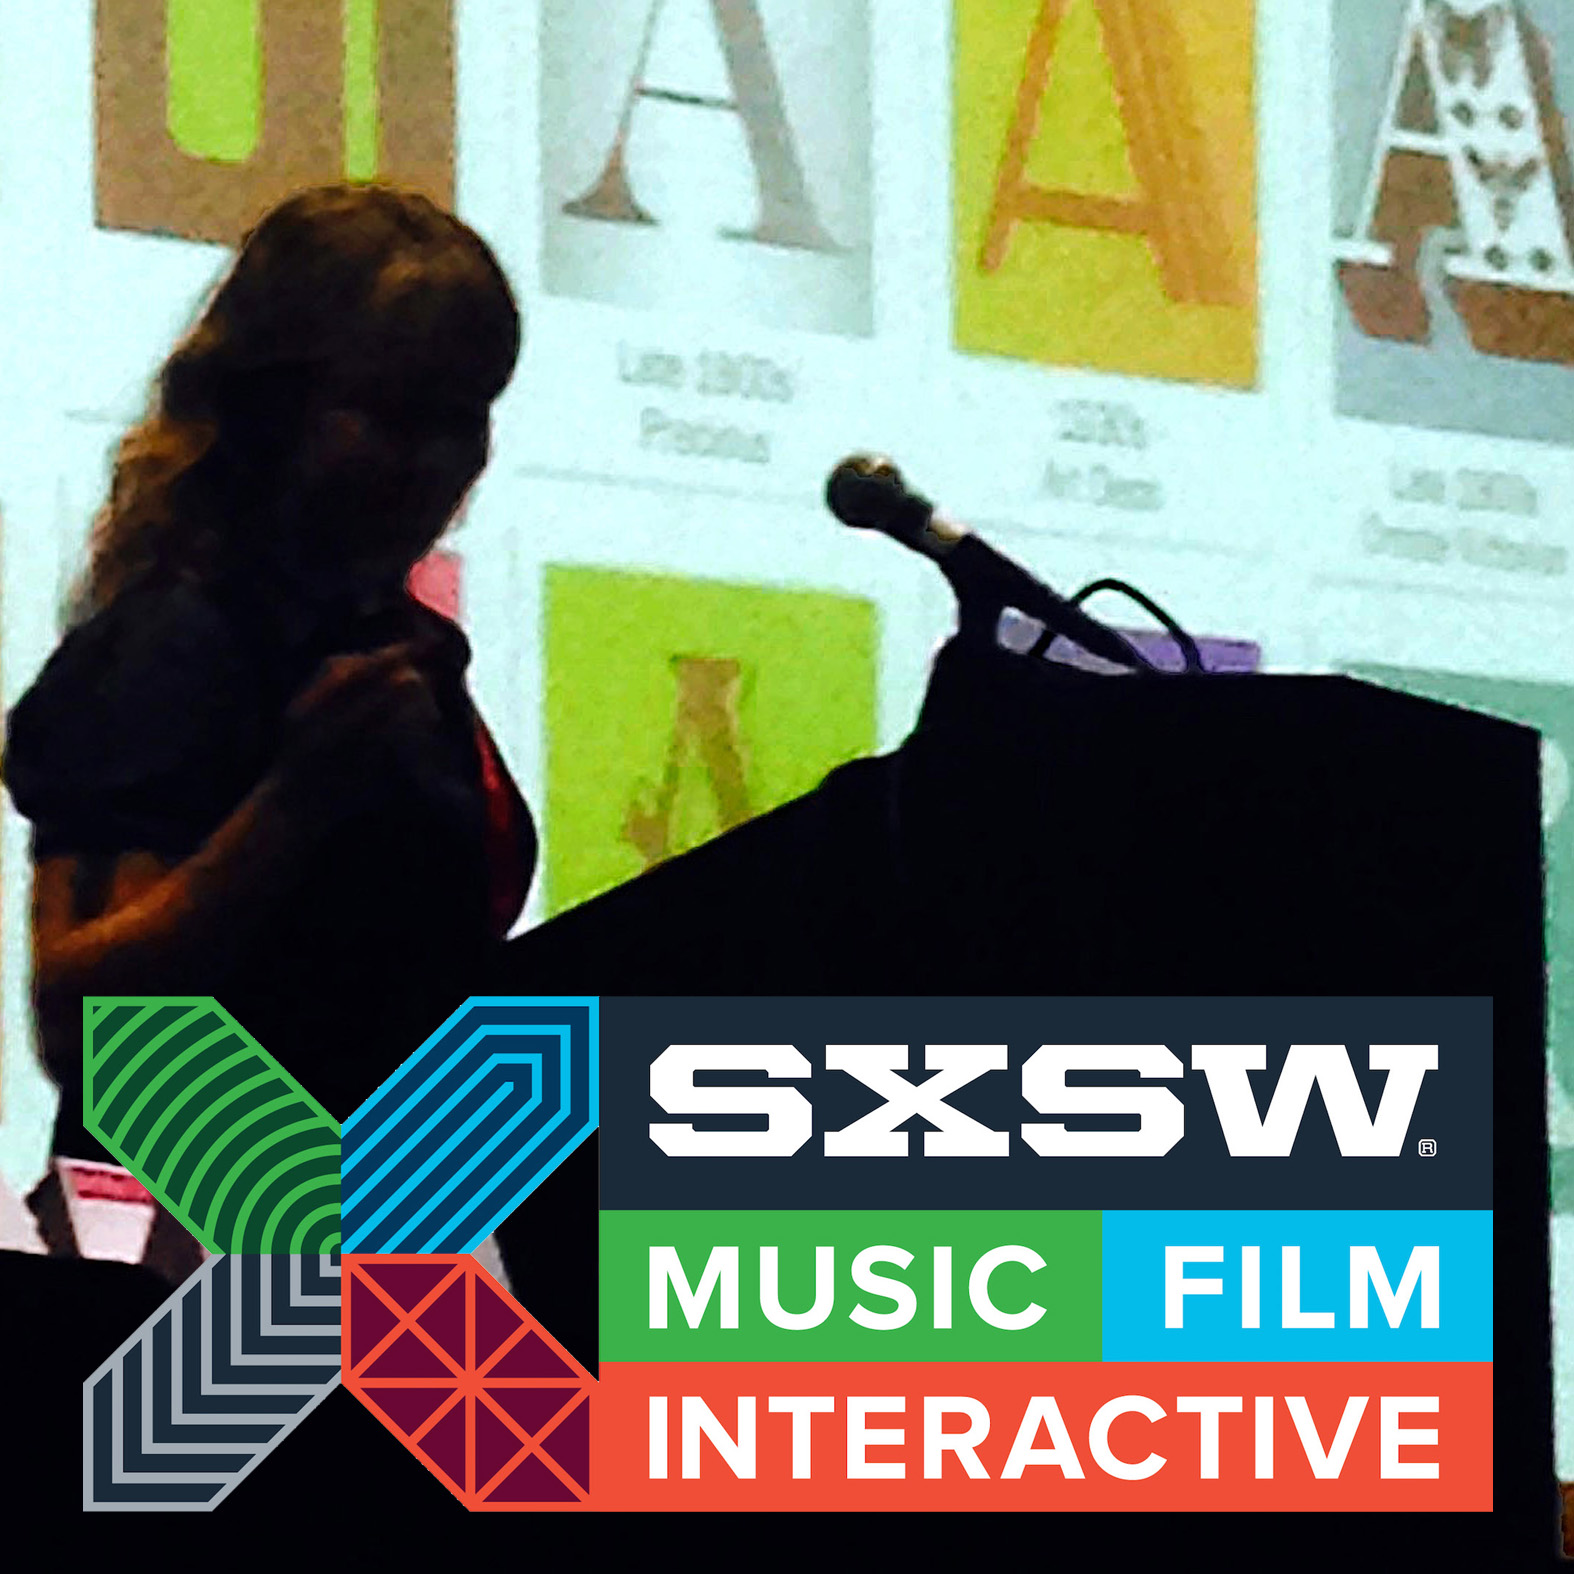 South by Southwest in Austin, Texas